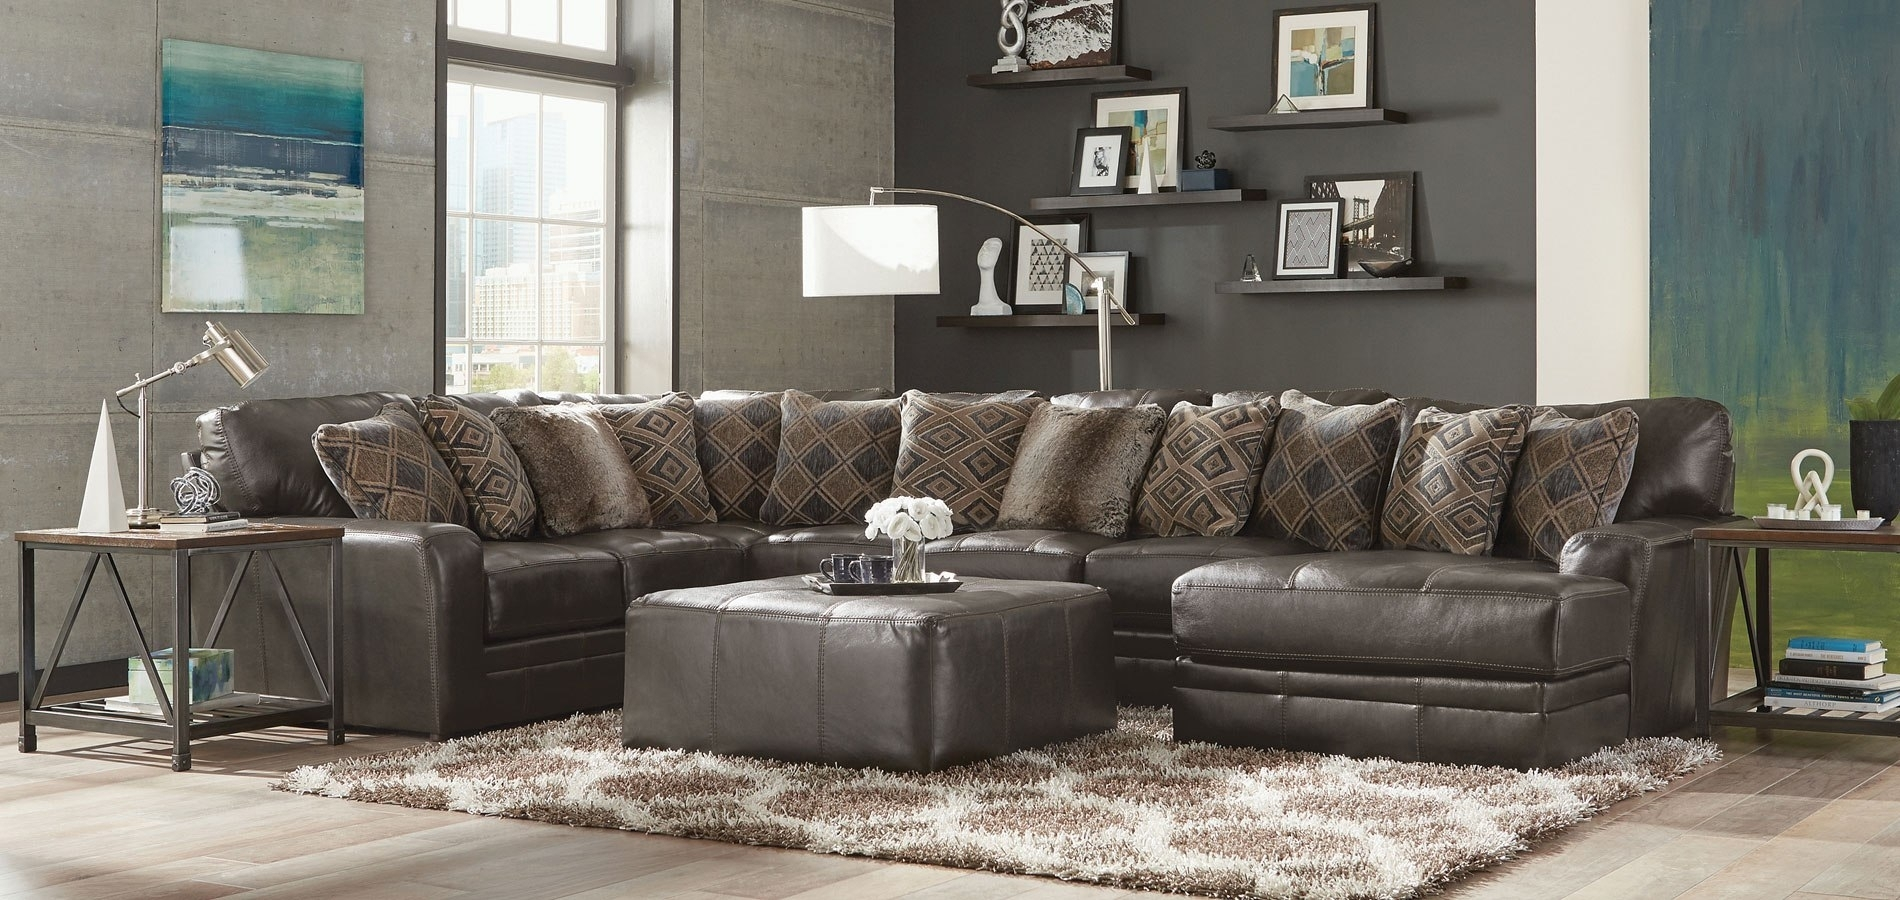 Denali Modular Sectional (Steel) Jackson Furniture | Furniture Cart For Denali Charcoal Grey 6 Piece Reclining Sectionals With 2 Power Headrests (Image 18 of 25)